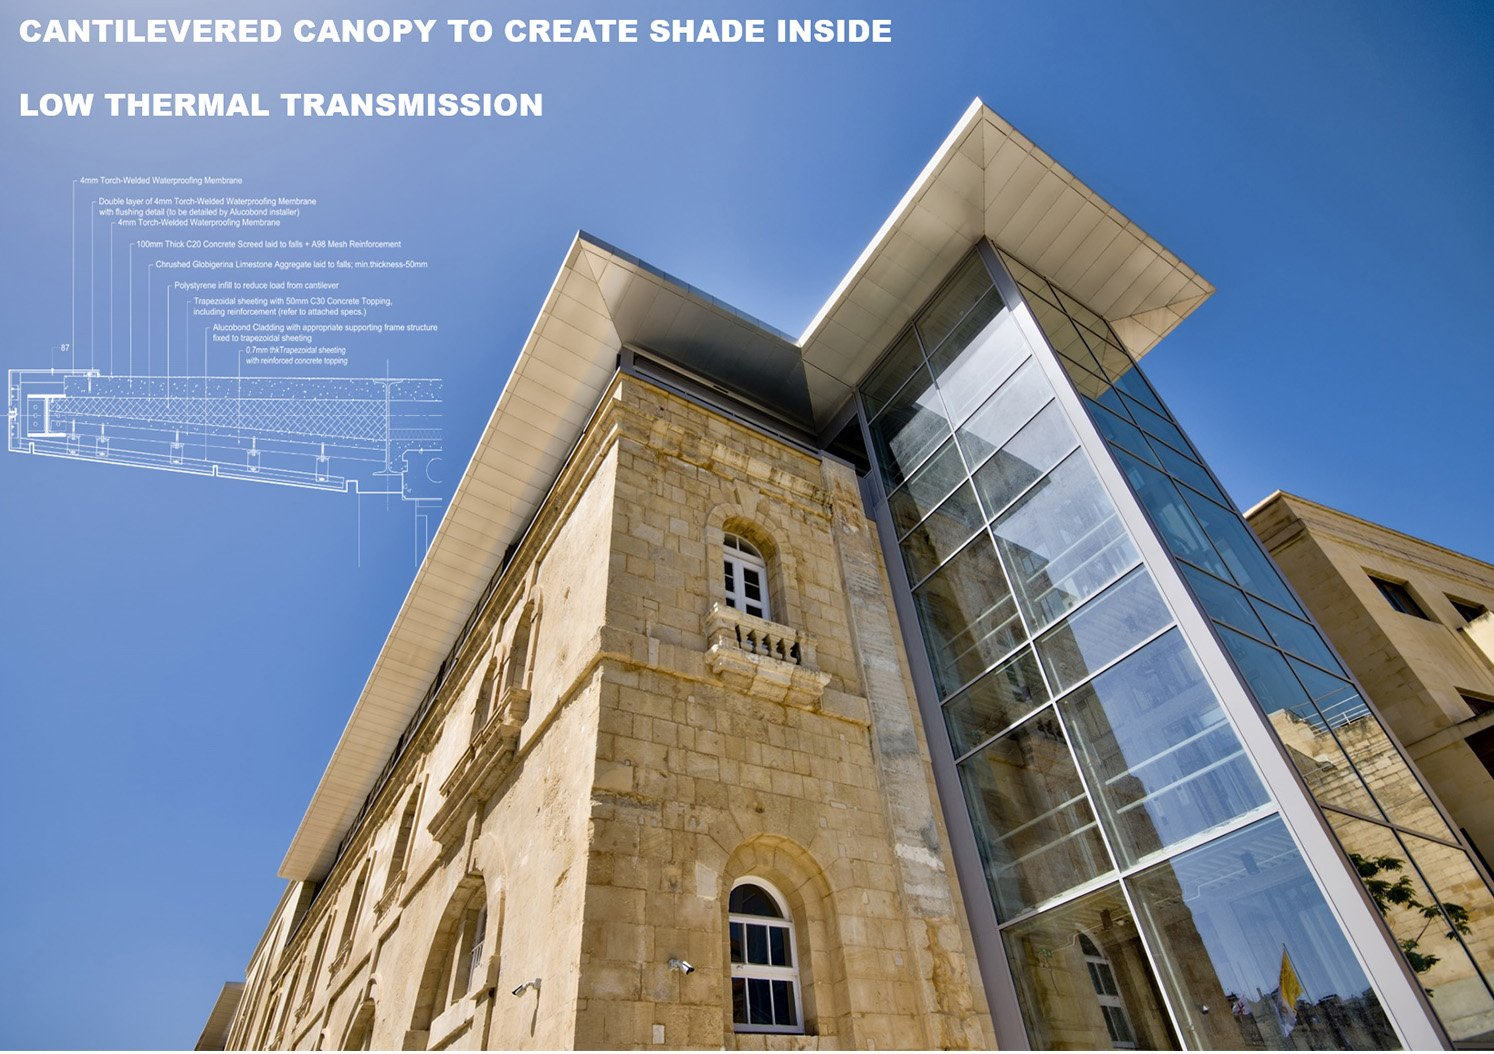 Cantilevered canopy Edwin Mintoff Architects & Alan Carville}